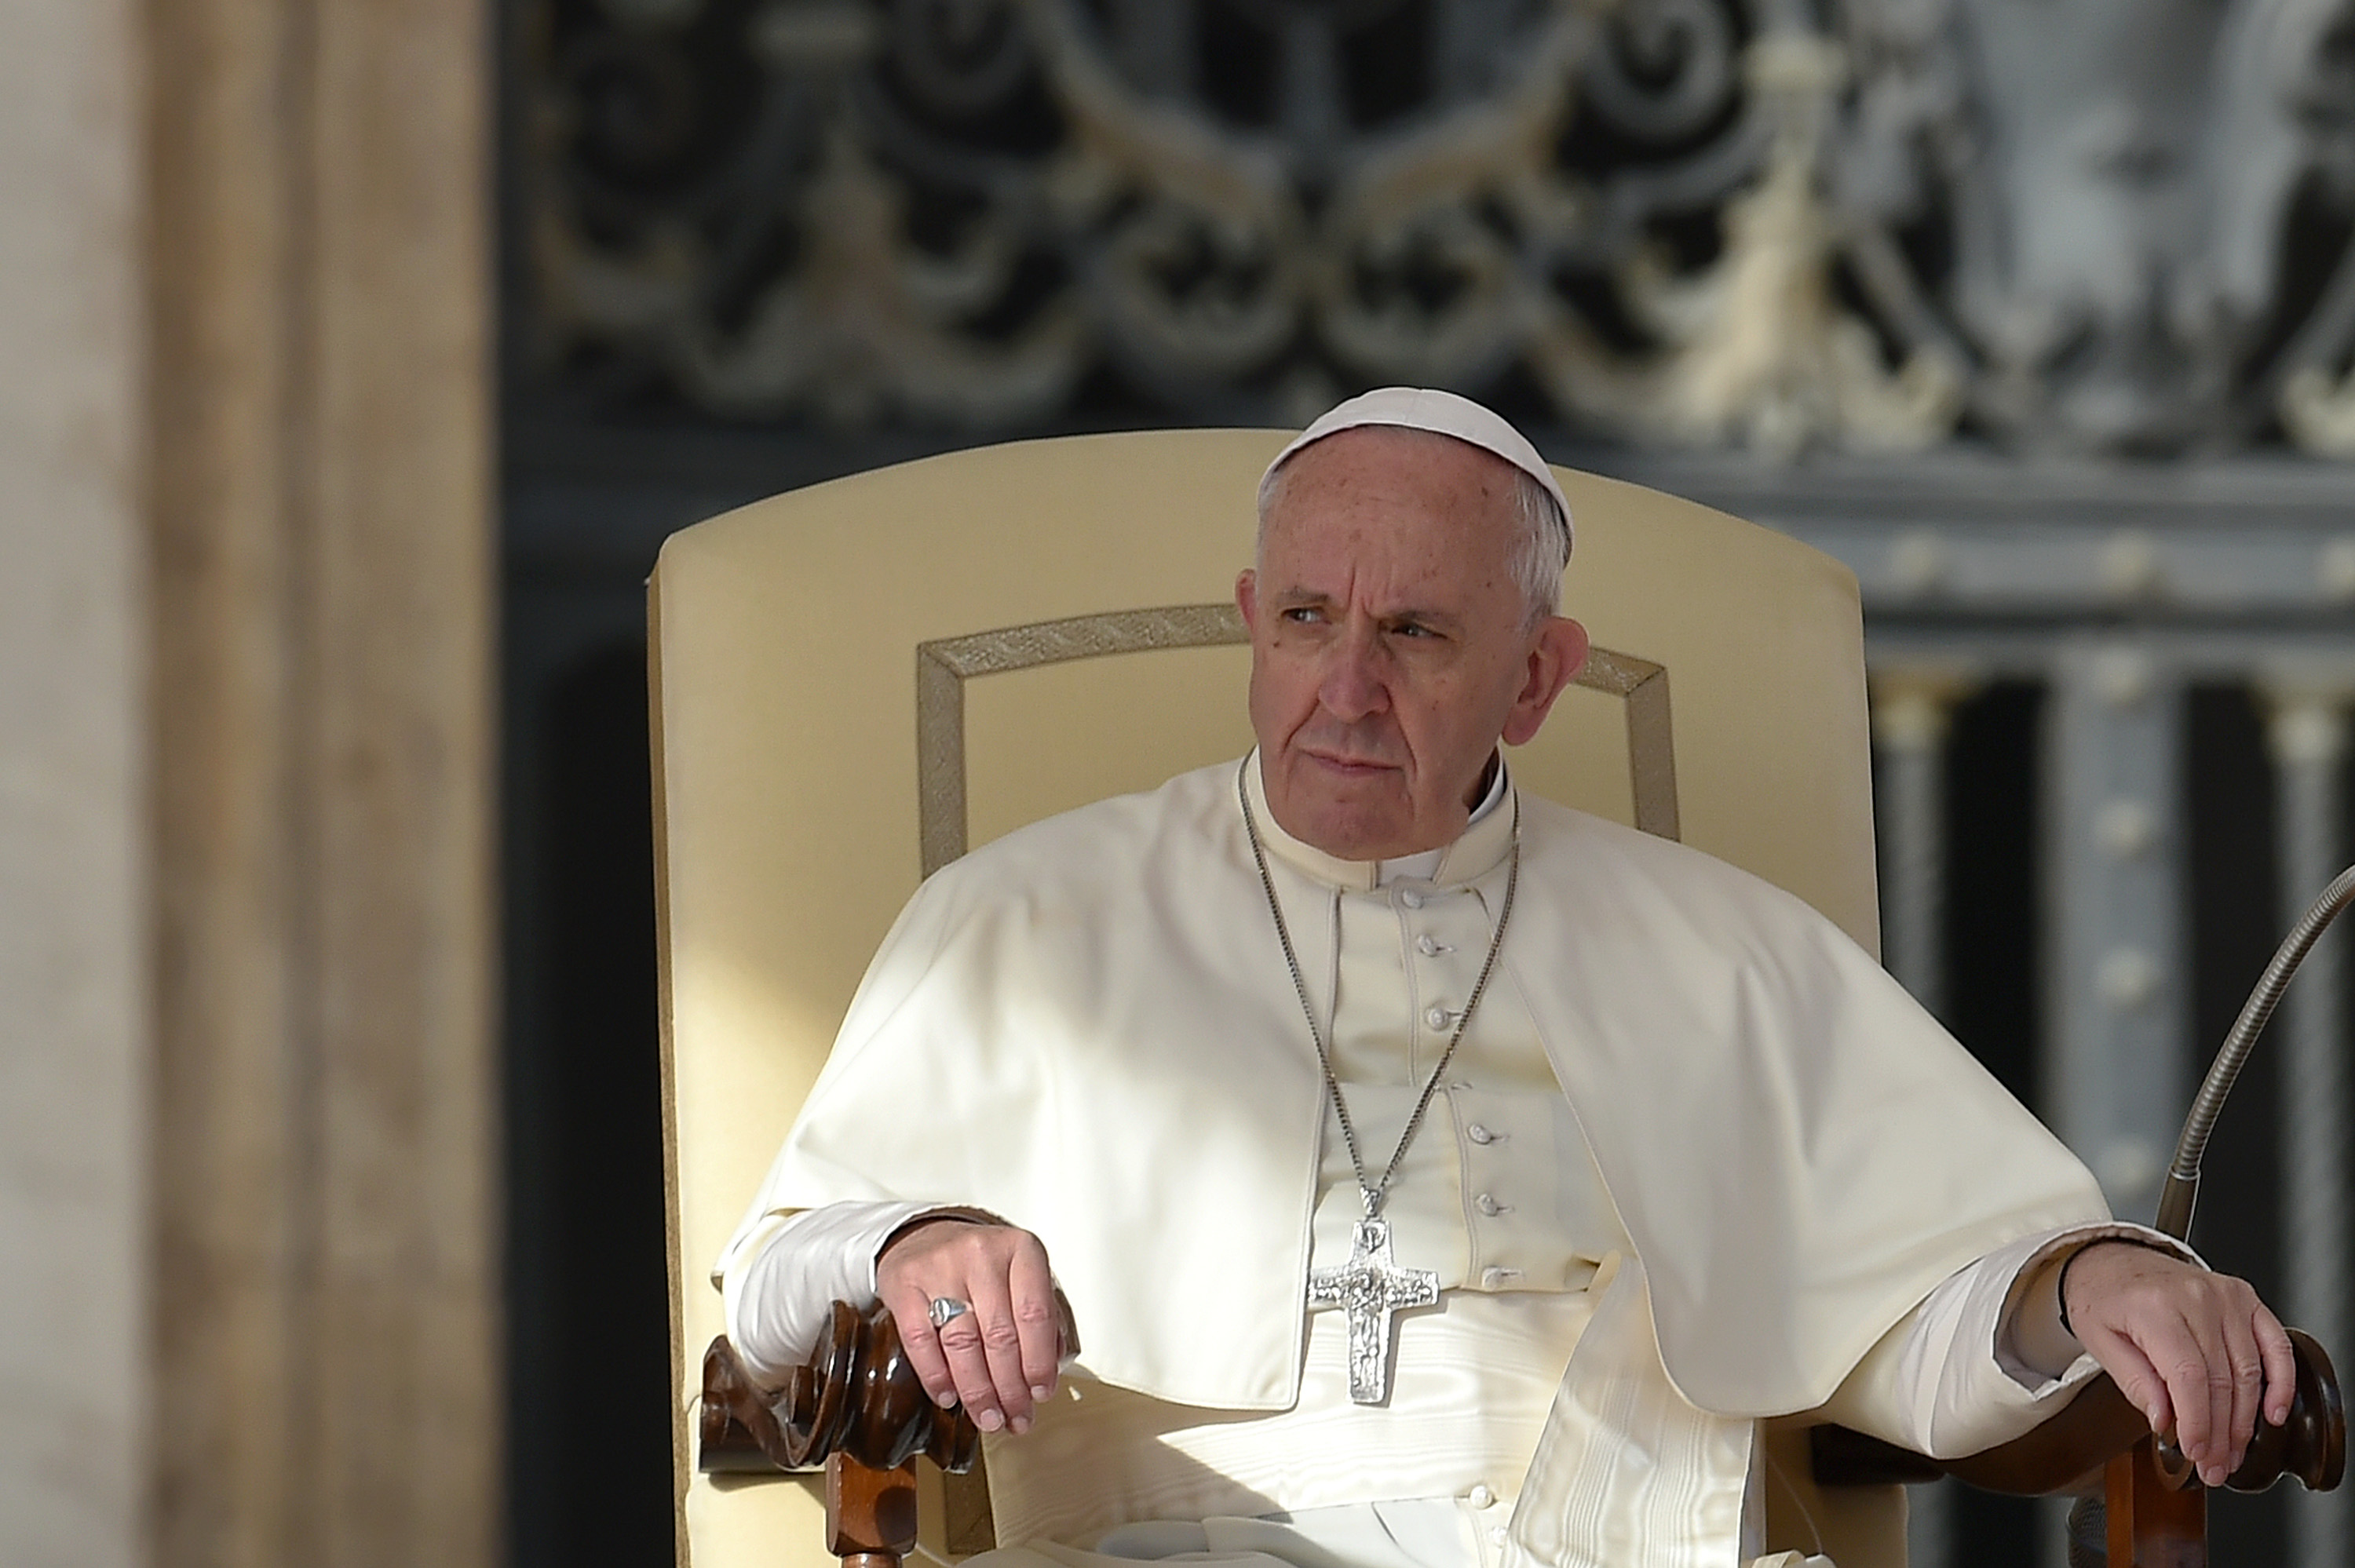 Pope Francis during his weekly general audience on February 24, 2016.